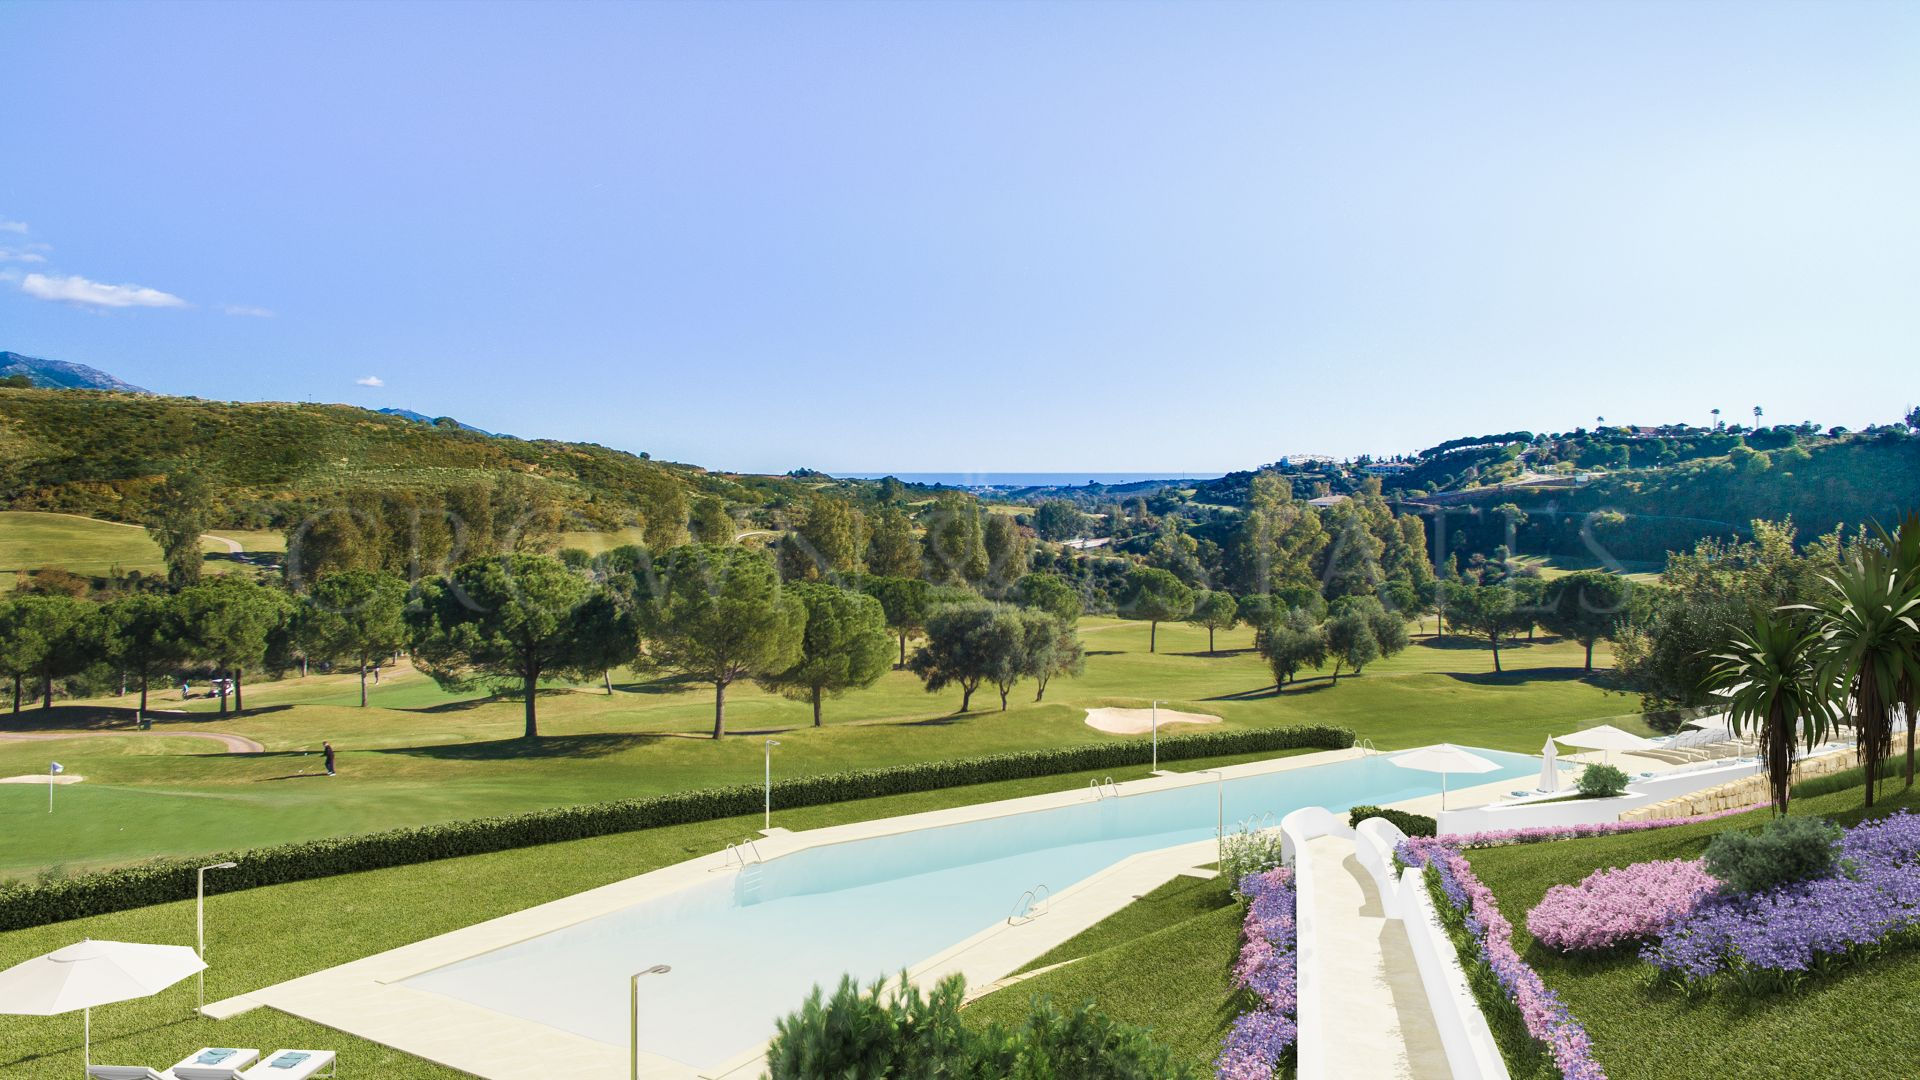 Fairways La Cala Golf, amazing apartments and penthouses first line golf in Mijas Costa